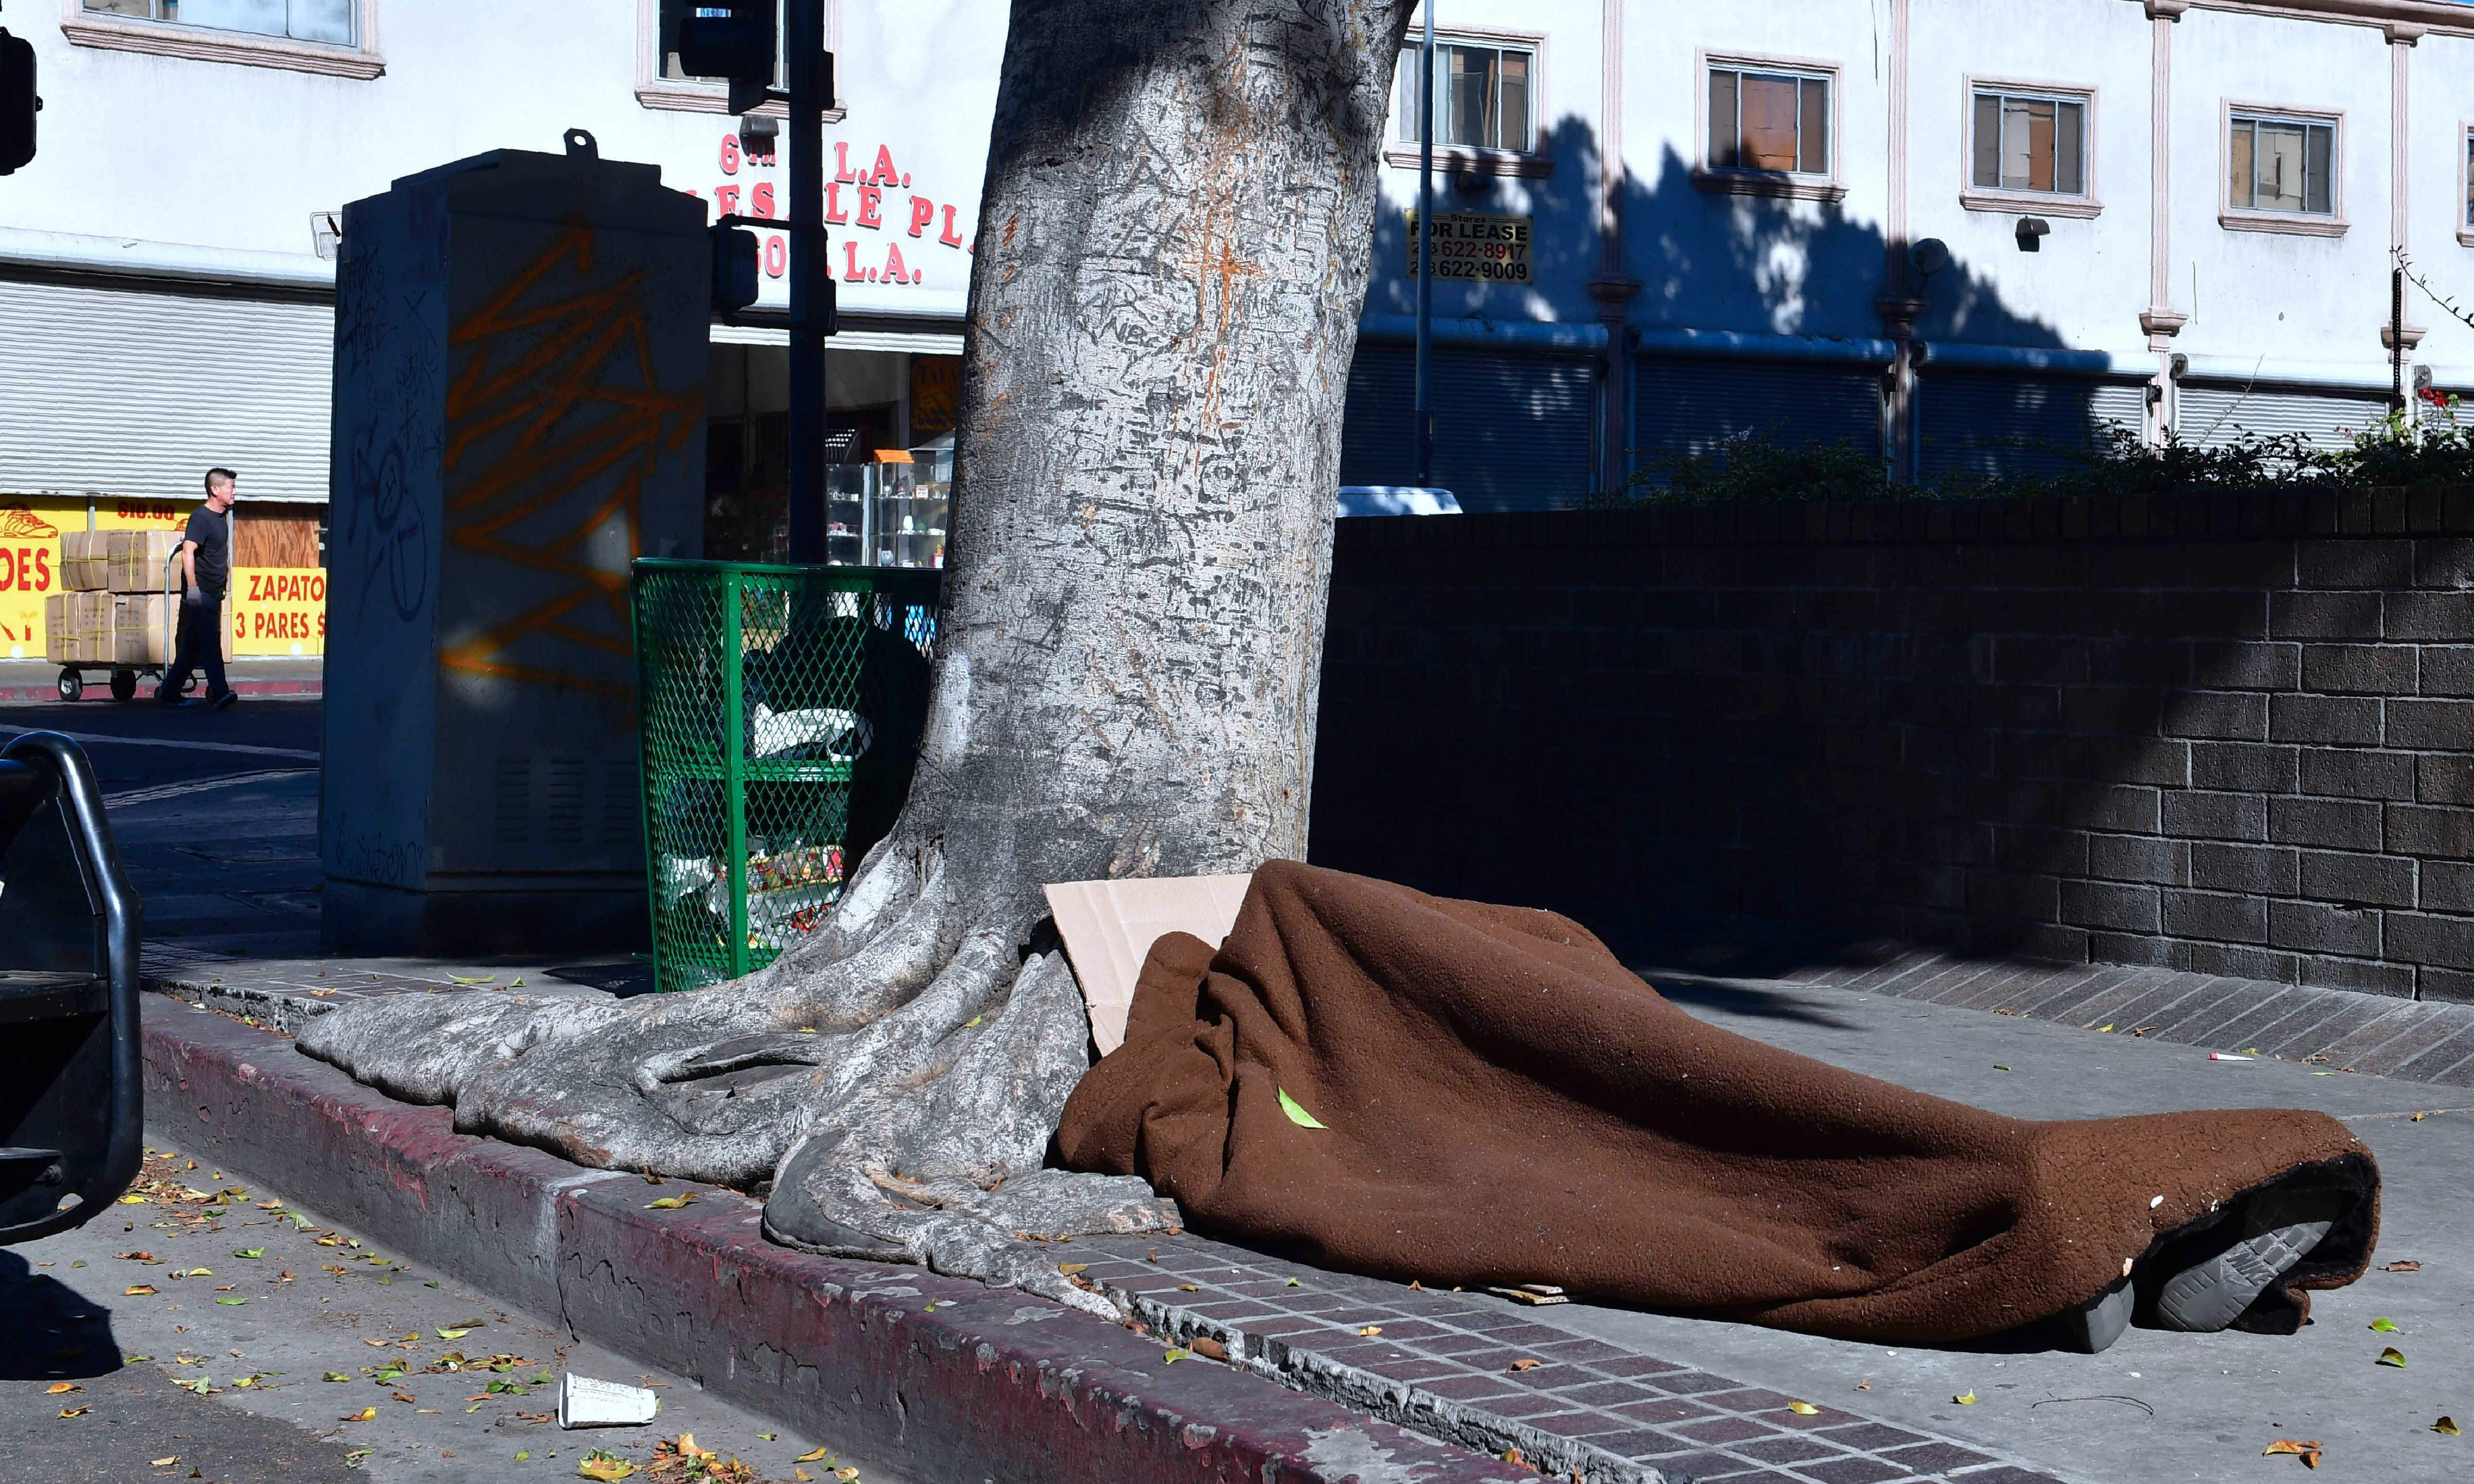 To Help The Homeless, Some In LA Are Giving Them A Place To Stay